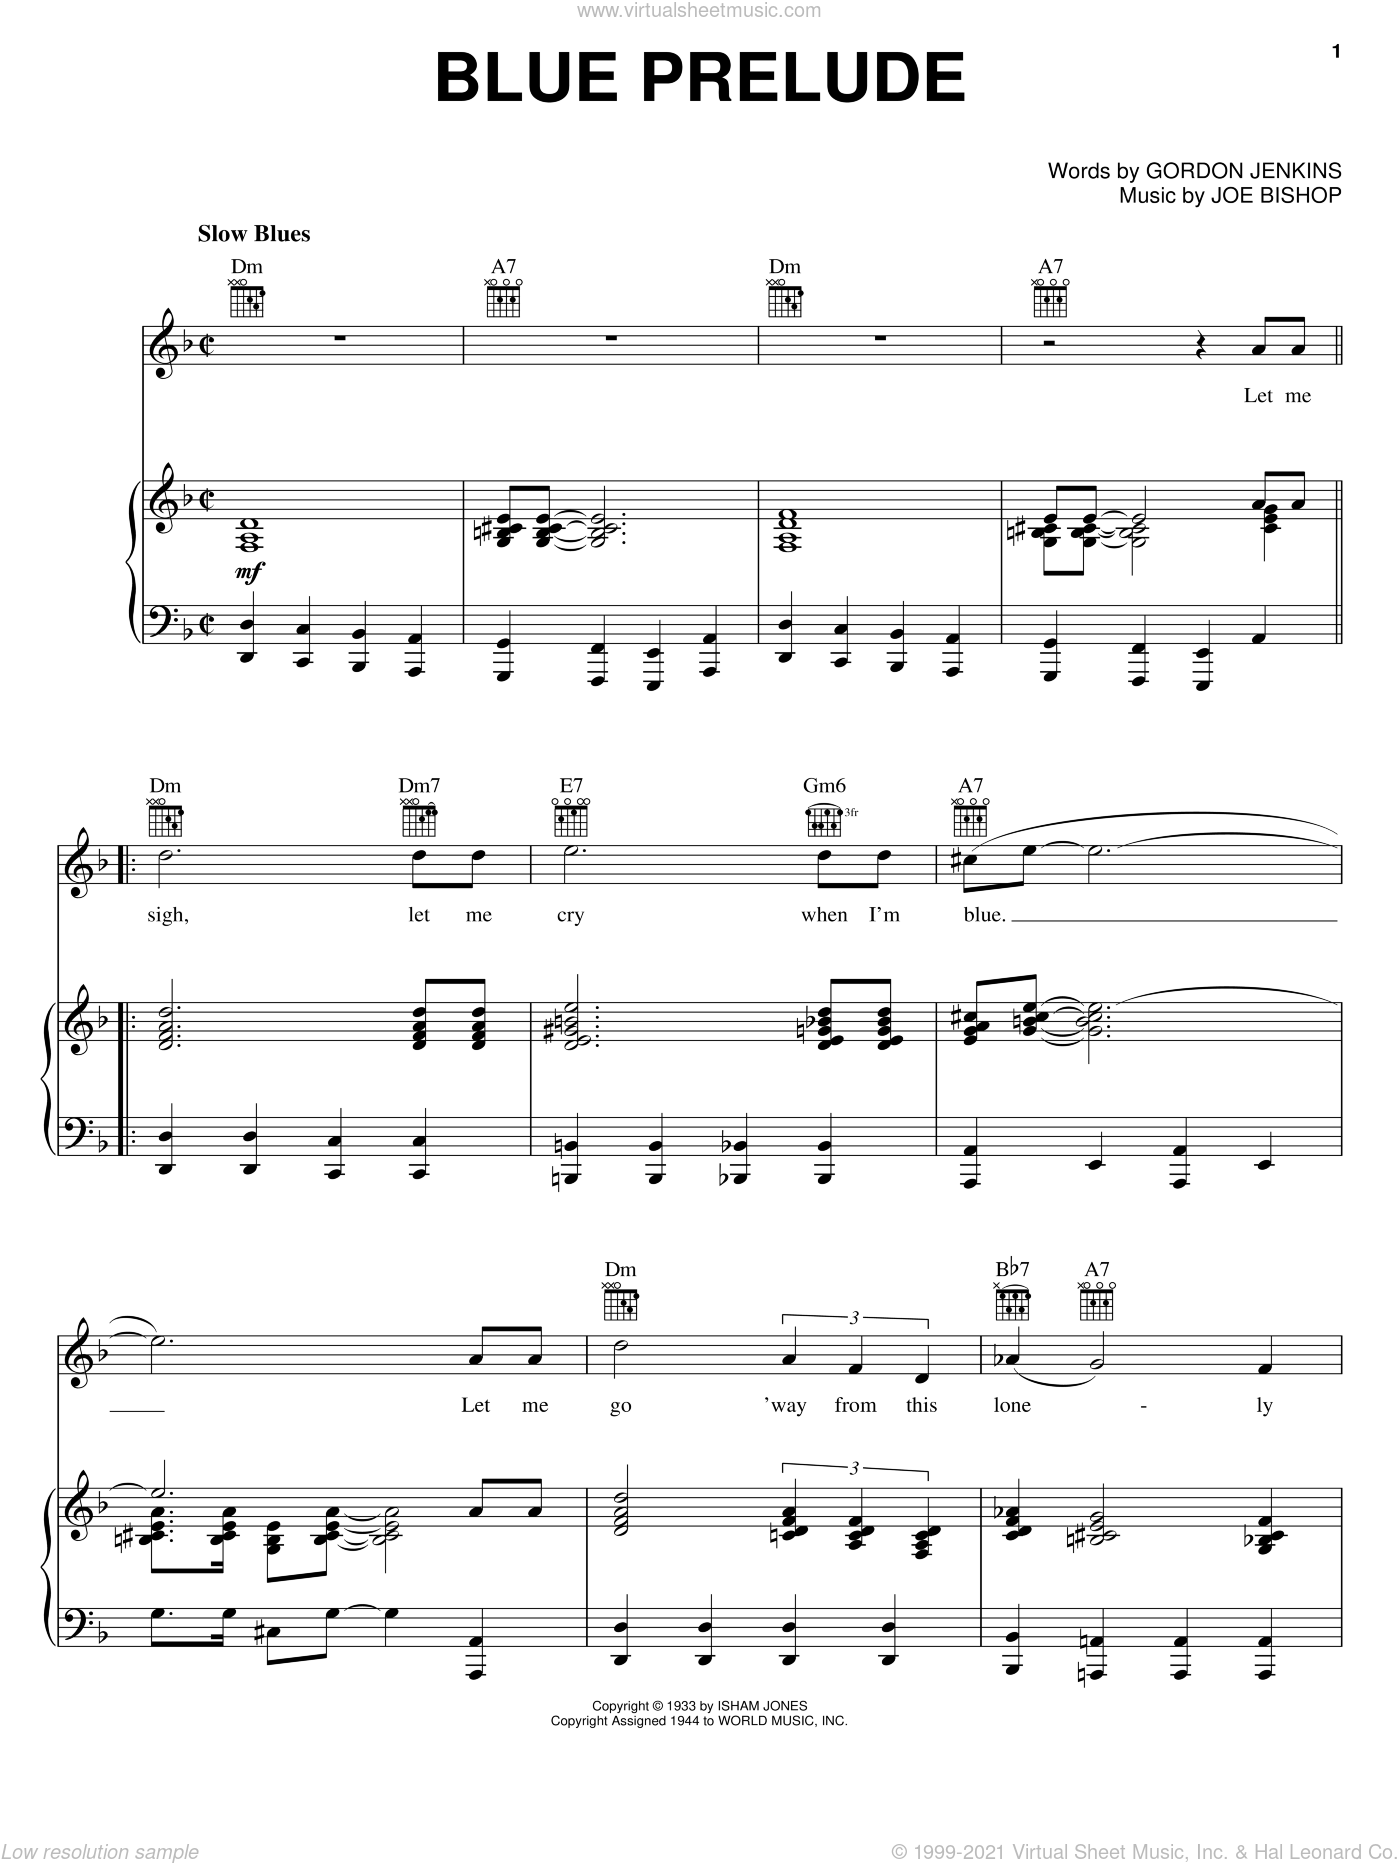 Blue Prelude sheet music for voice, piano or guitar by Joe Bishop